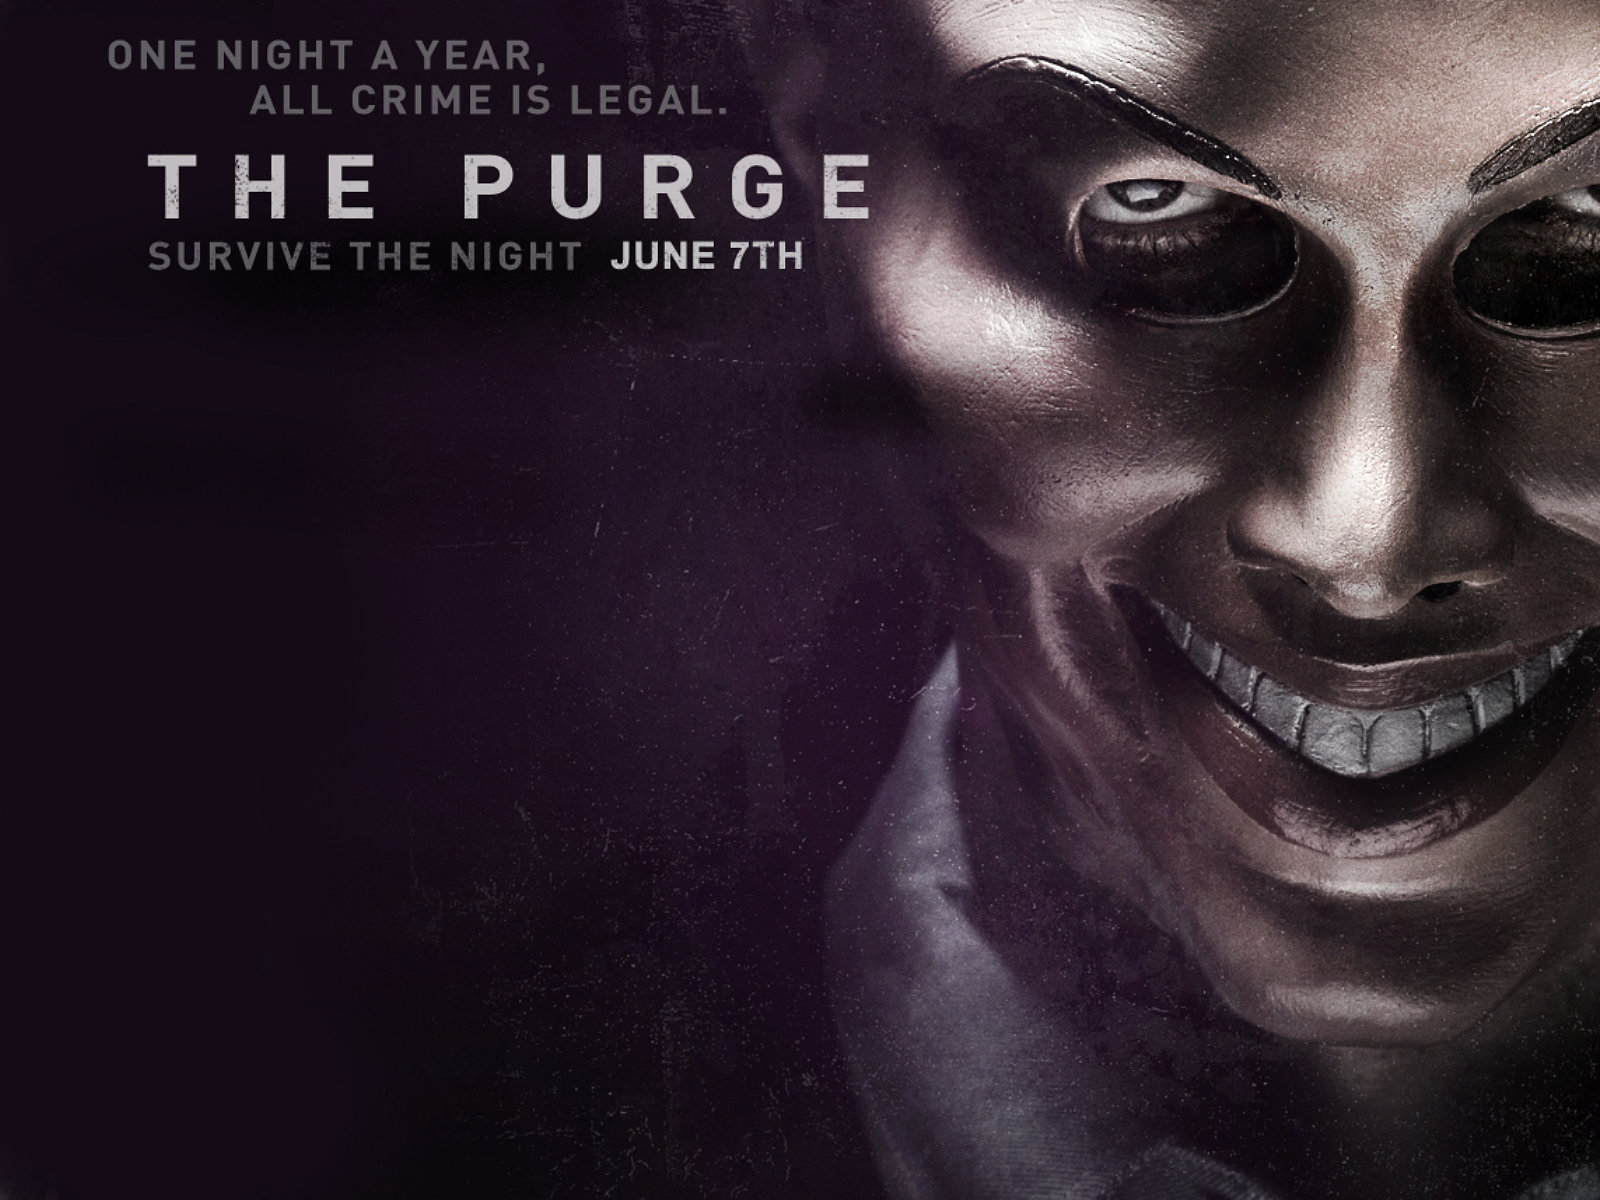 Bucks And Corn Low Budget Film The Purge Surprises At The